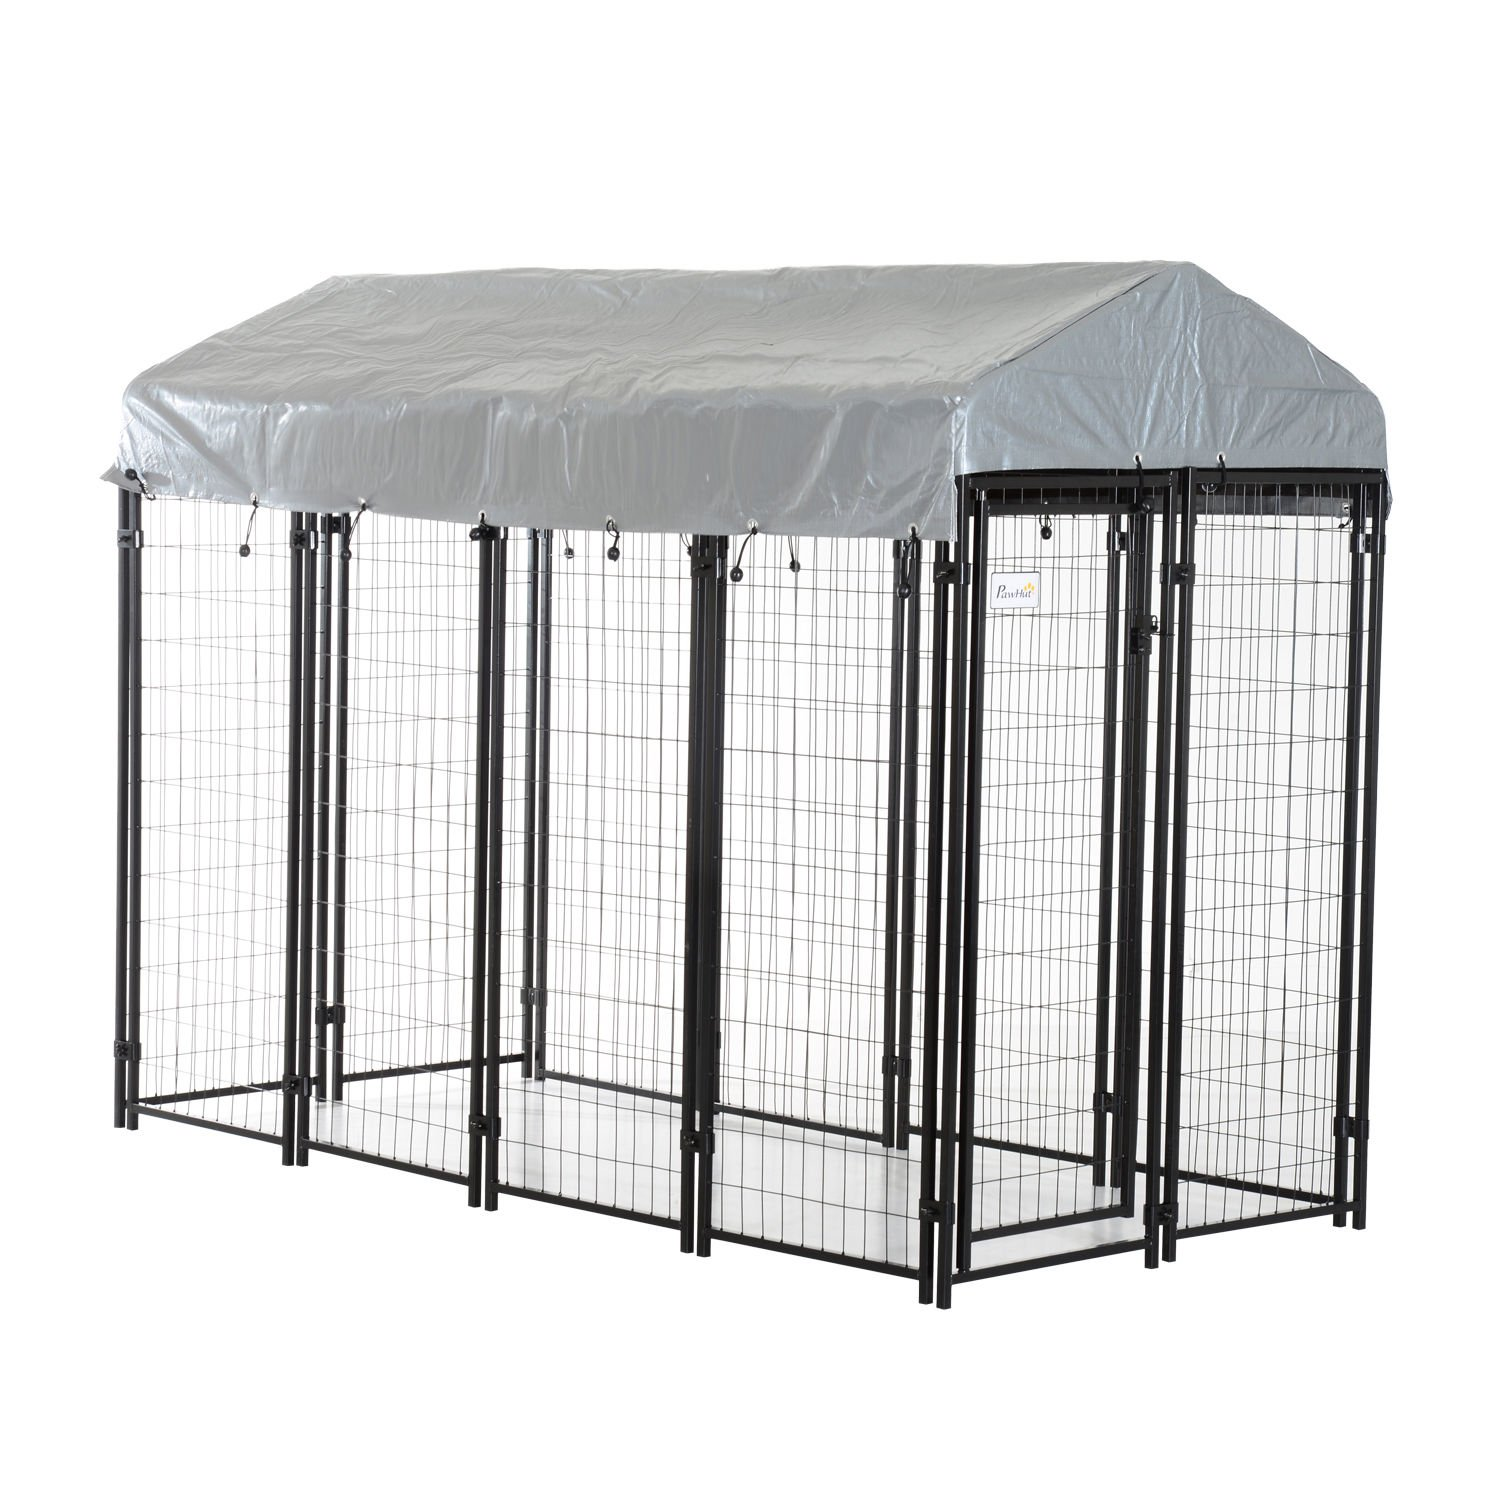 PawHut 97'' x 46'' Outdoor Galvanized Metal Dog Kennel Playpen with UV and Water Resistant Tarp Cover by PawHut (Image #1)